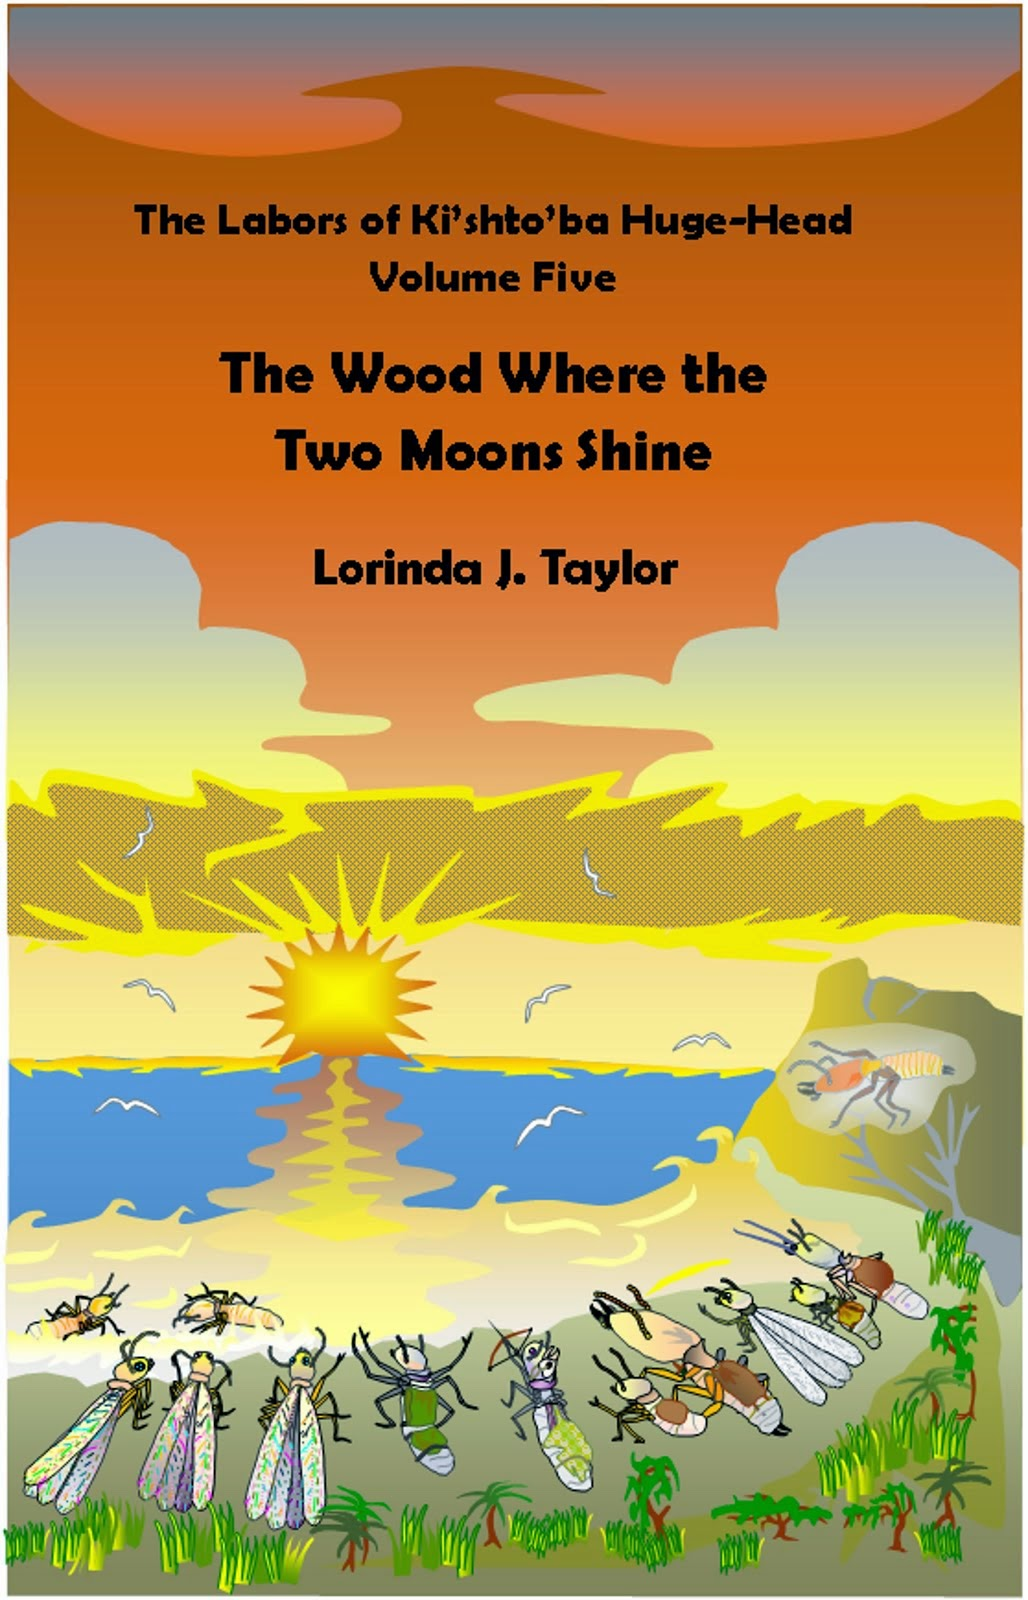 THE WOOD WHERE THE TWO MOONS SHINE, v.5 of THE LABORS OF KI'SHTO'BA HUGE-HEAD